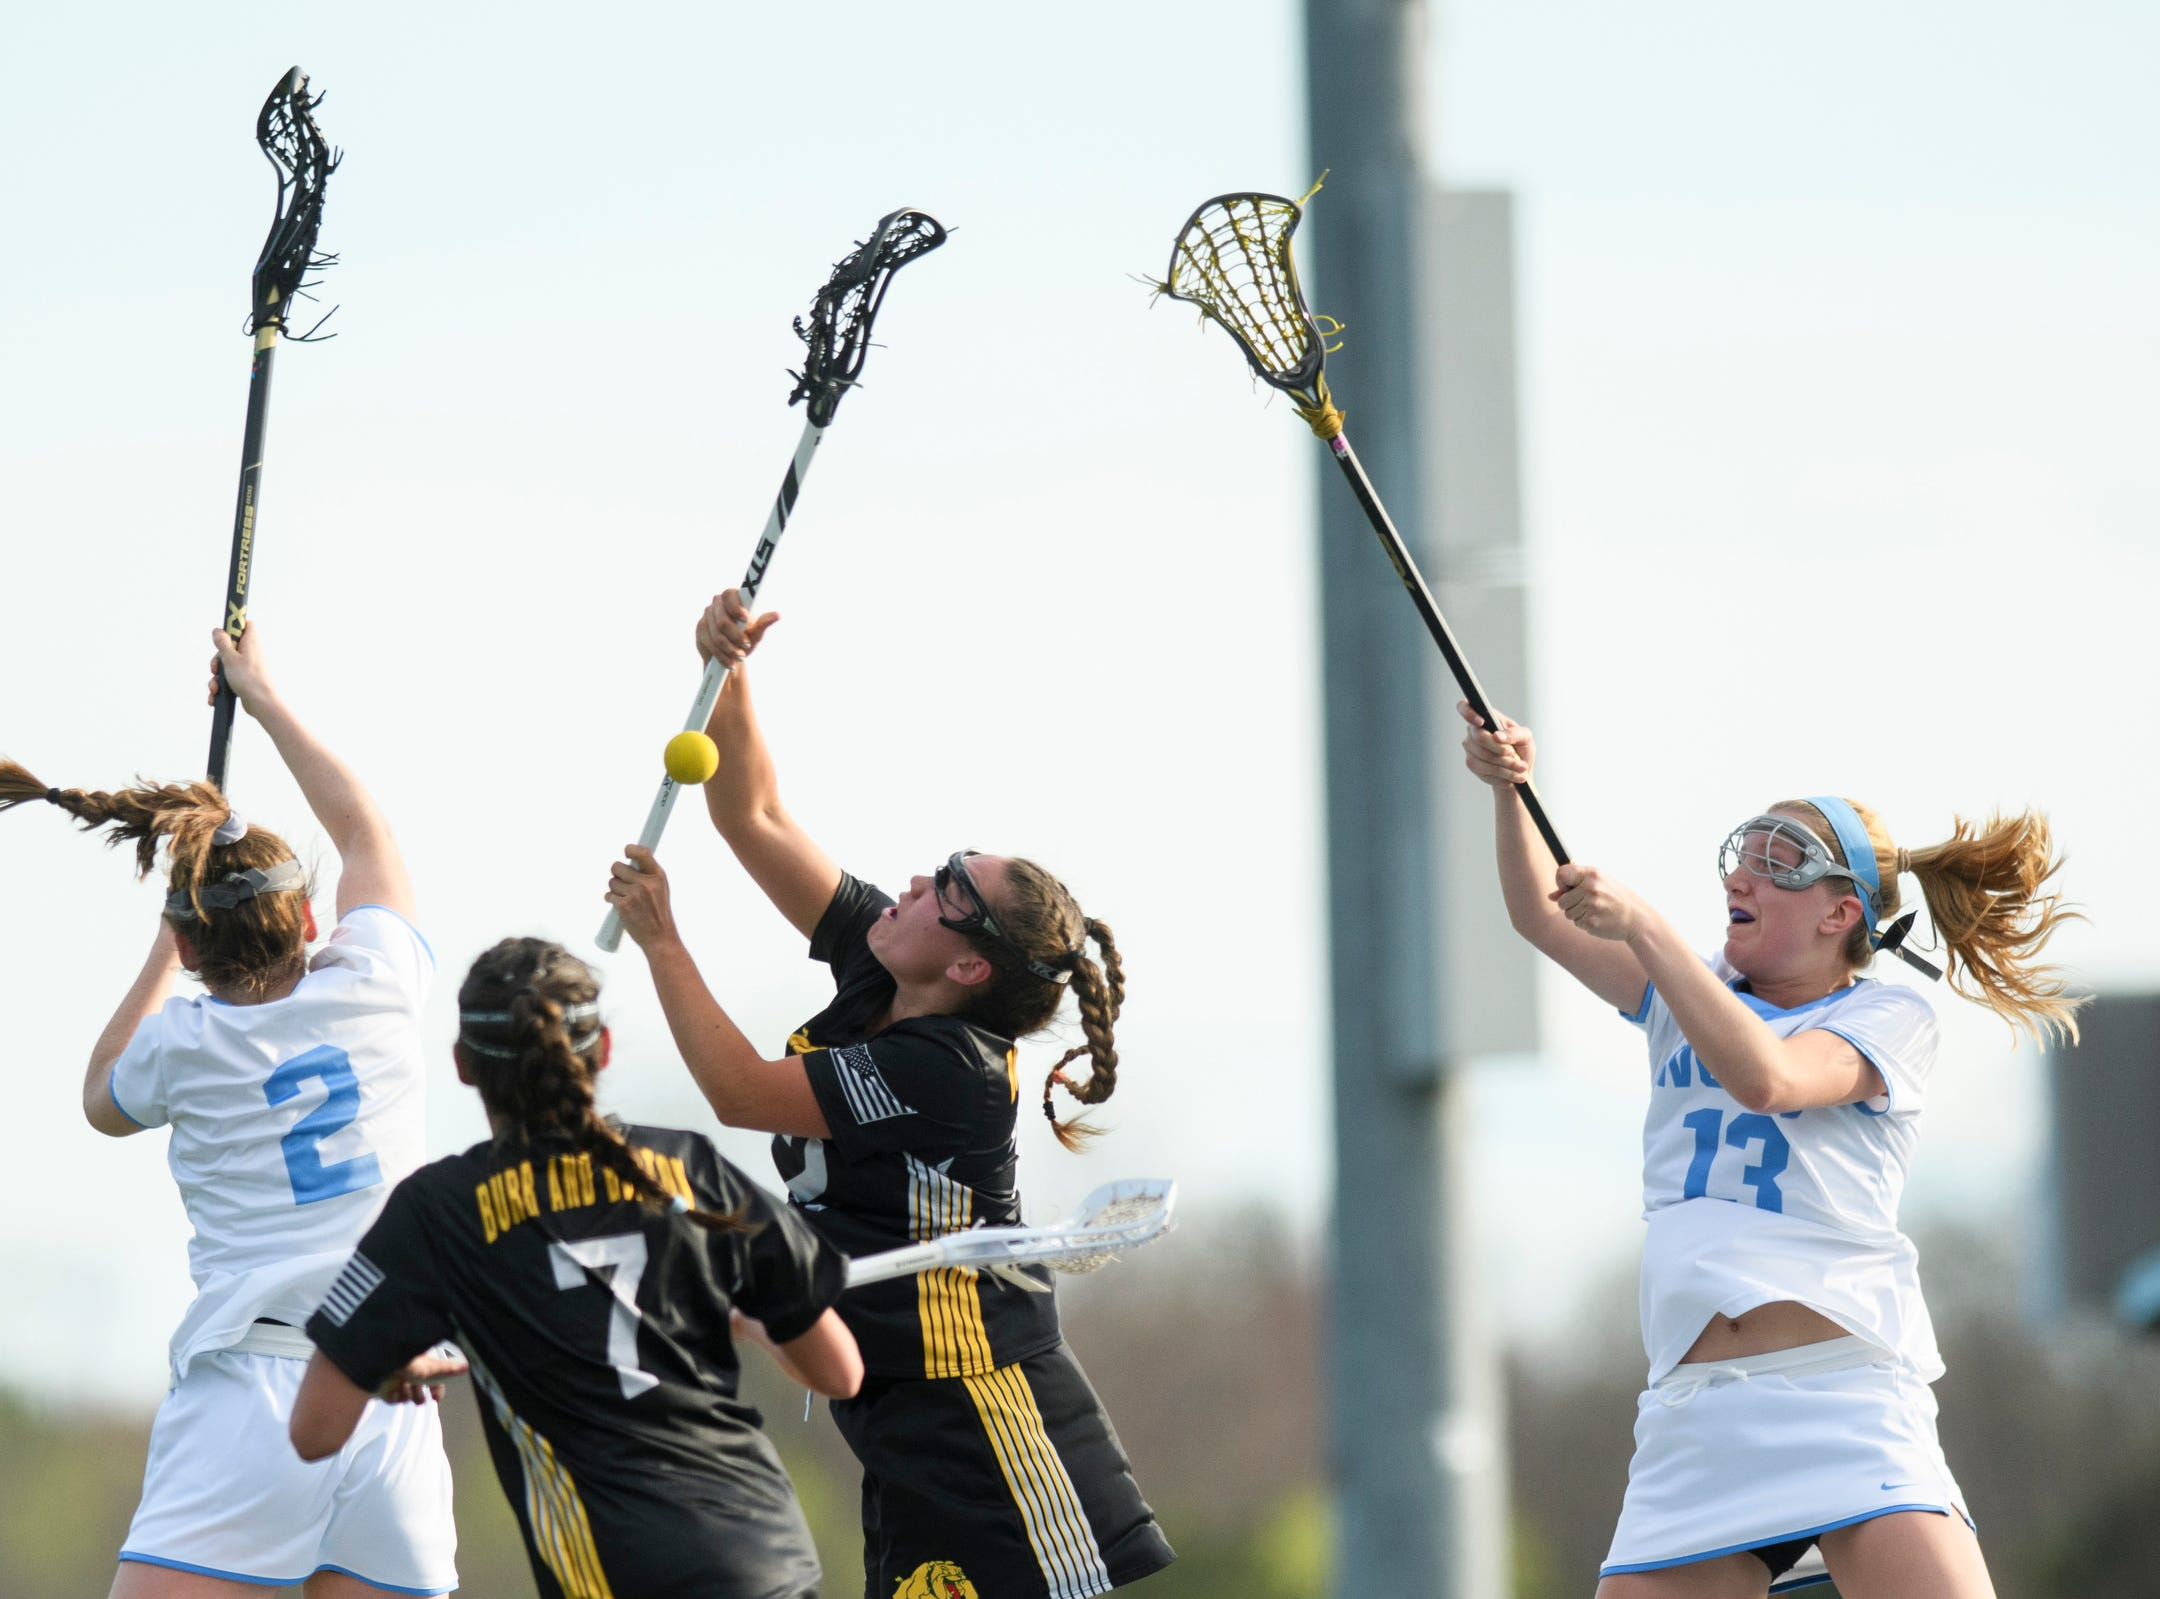 Burr and Burton's Fiona McMahon (2) battles for the loose ball with South Burlington's Kate hall (2) during the high school girls lacrosse game between Burr and Burton Bulldogs and the South Burlington Wolves at Munson Field on Monday afternoon May 6, 2019 in South Burlington, Vermont.